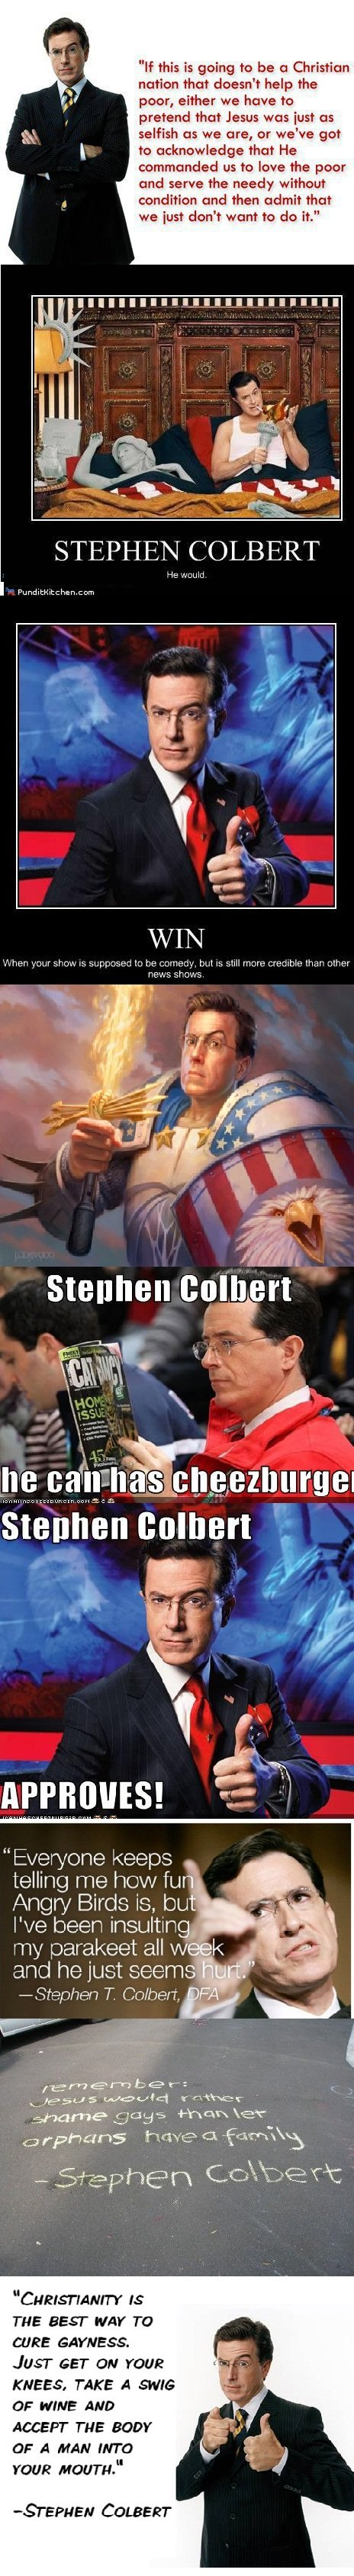 Stephen Colbert comp. I hope you lol'd. if this ' ' ta '.lloll. a Christian nation that deem? help the pear, either we have ta pretend that Jesus was inst as se